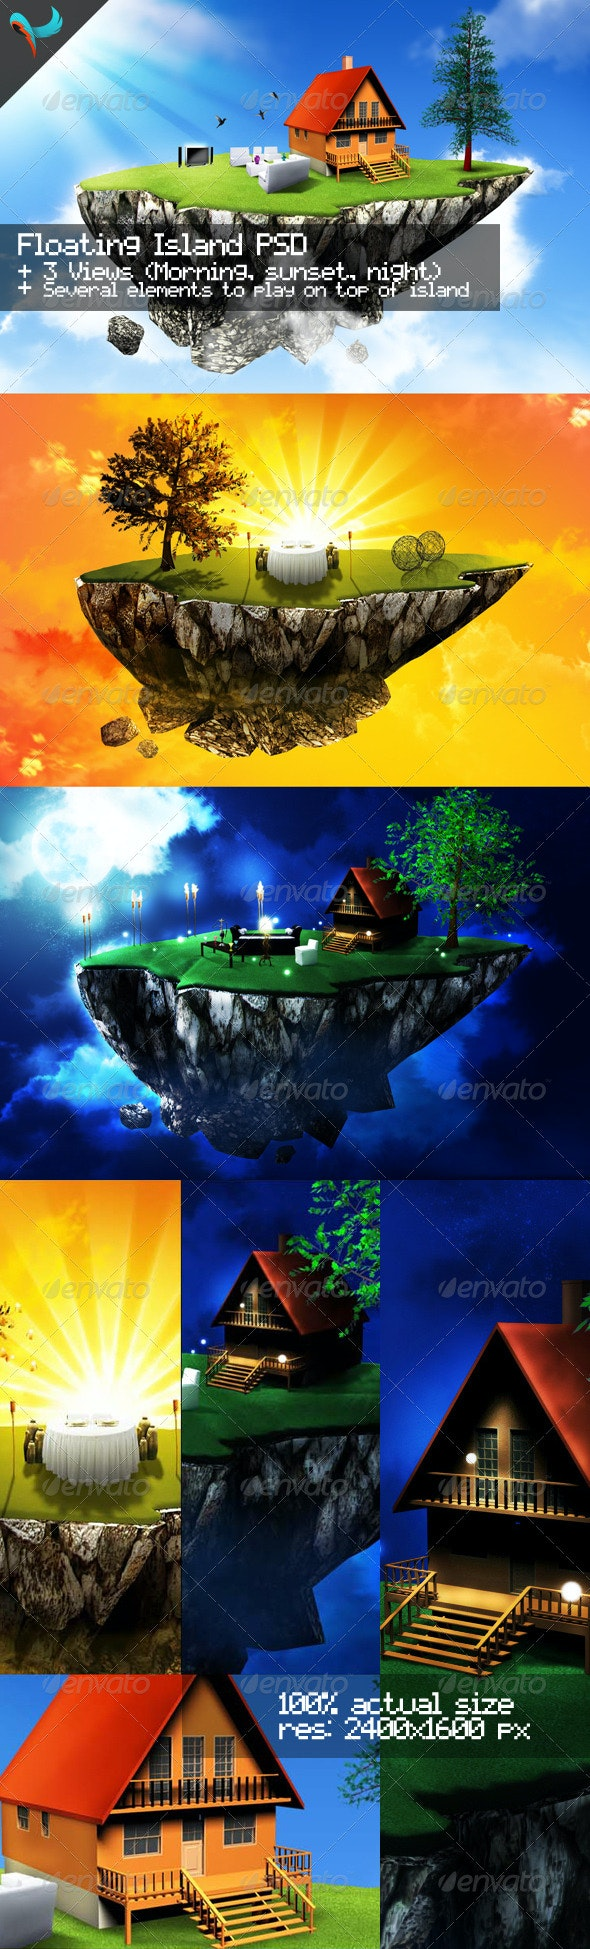 Floating Island Day, Sunset, and Night - Scenes Illustrations